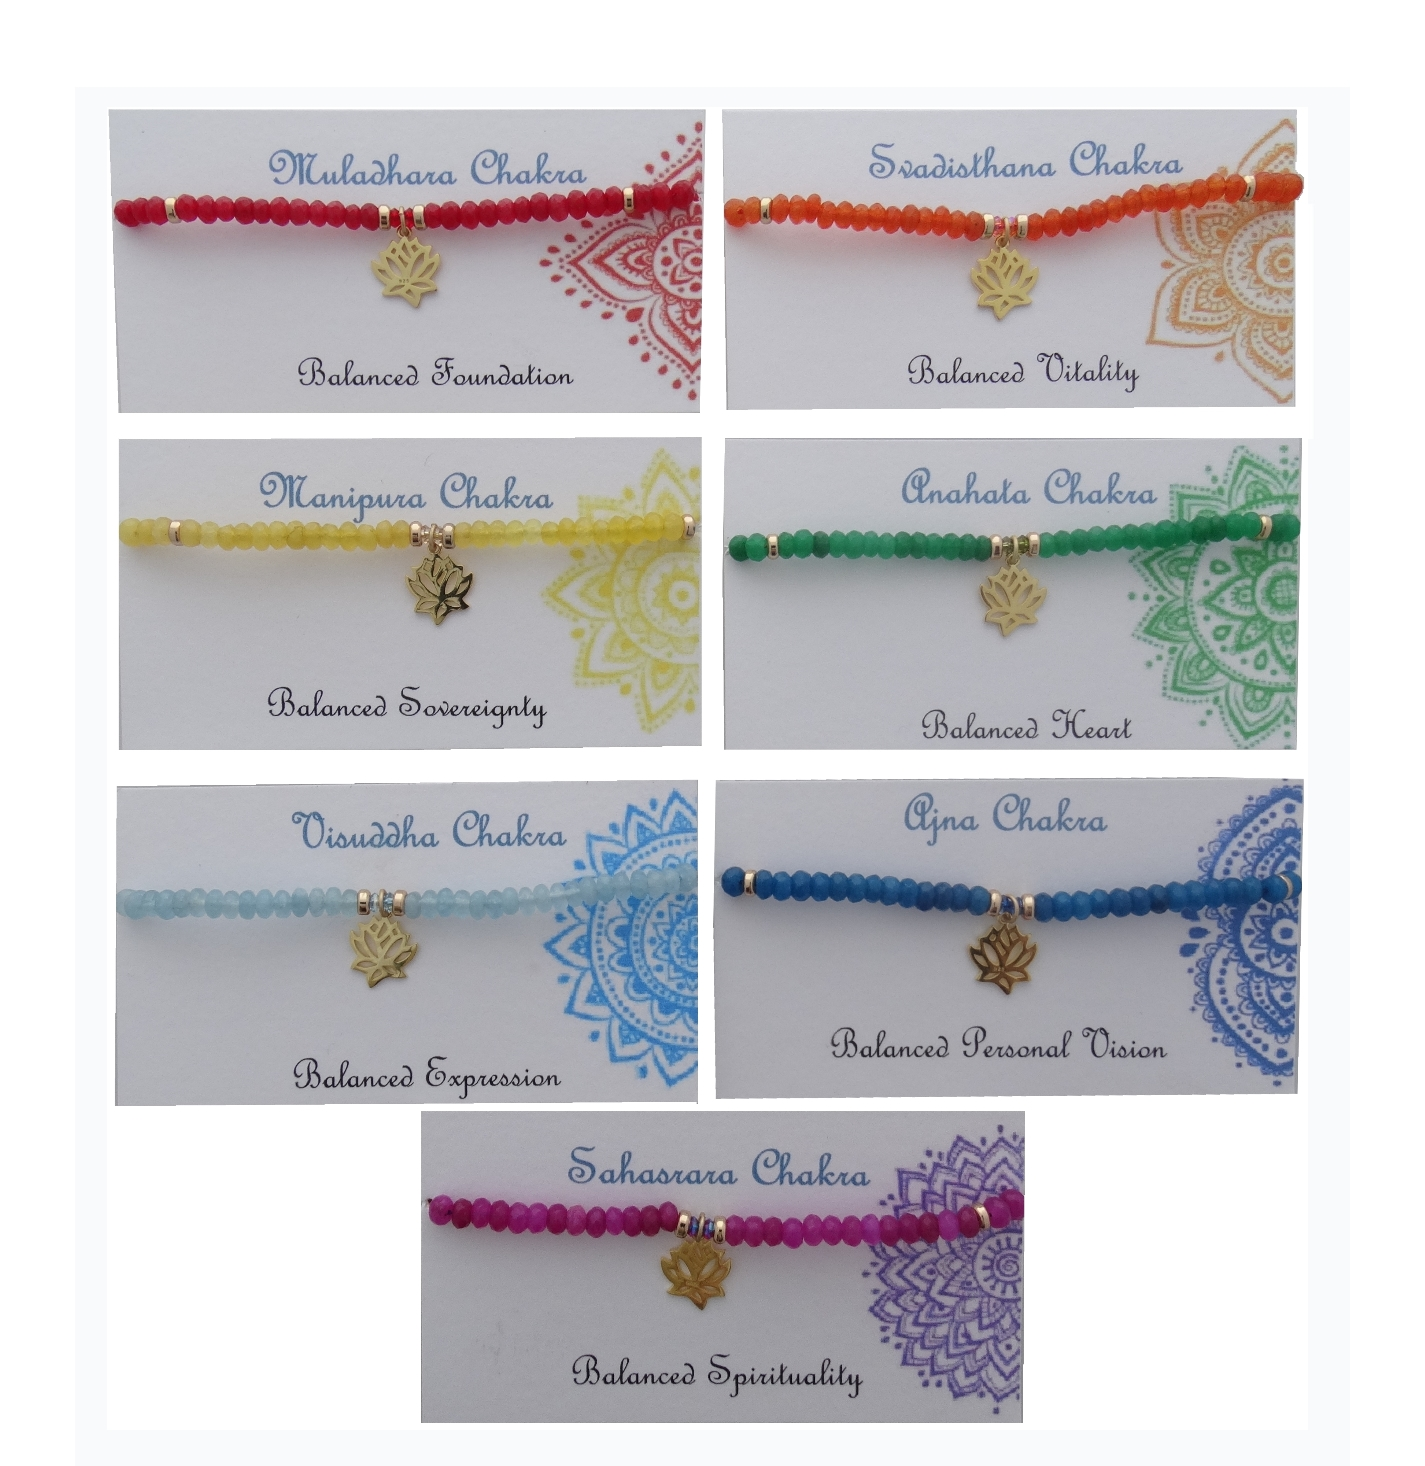 Chakra Bracelets - Each corresponds to a specific aspect of our lives.